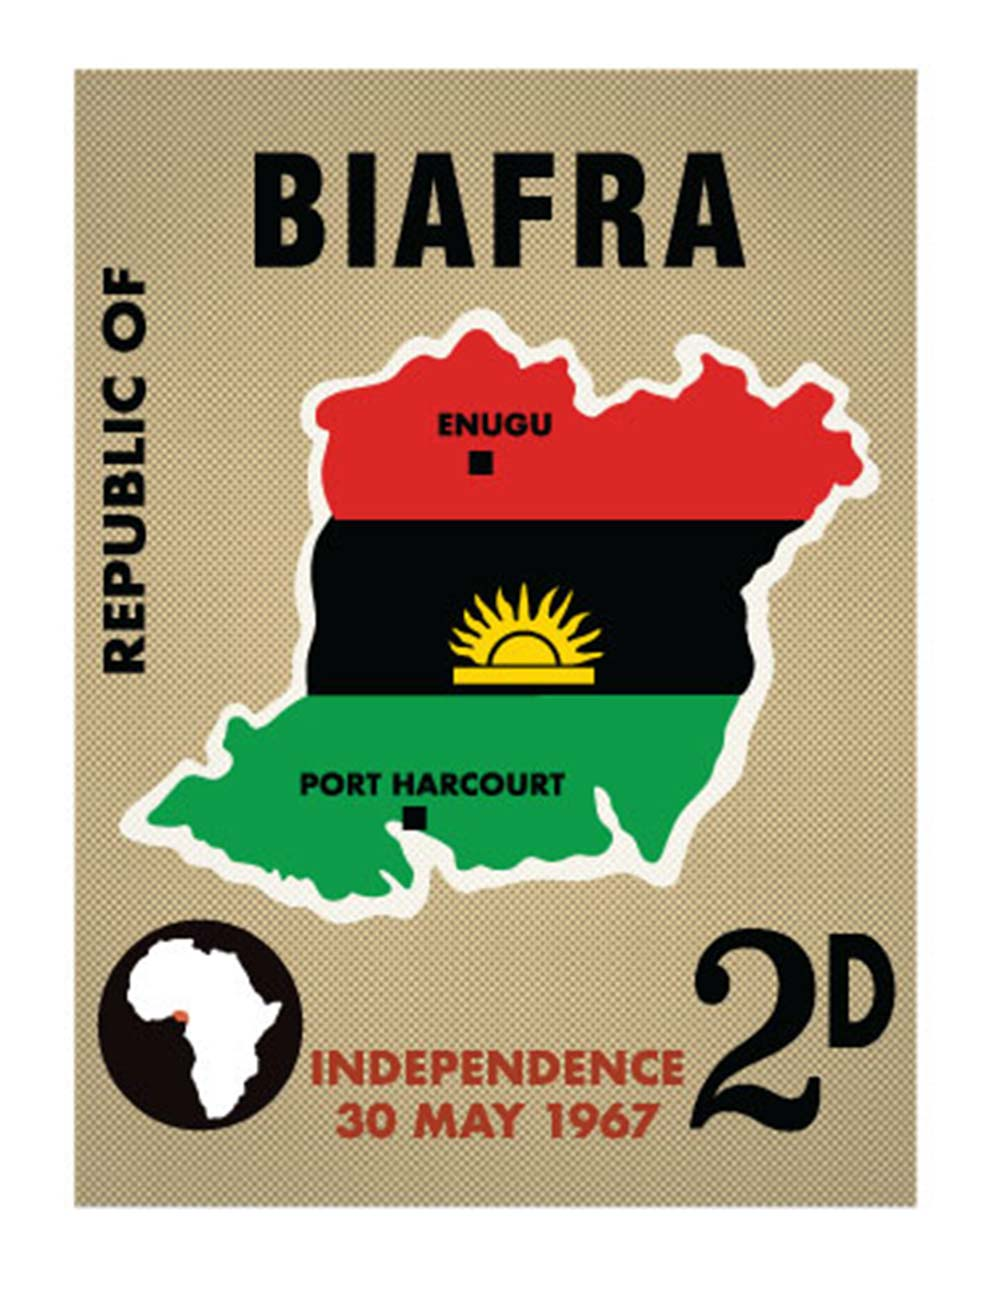 Republic of Biafra